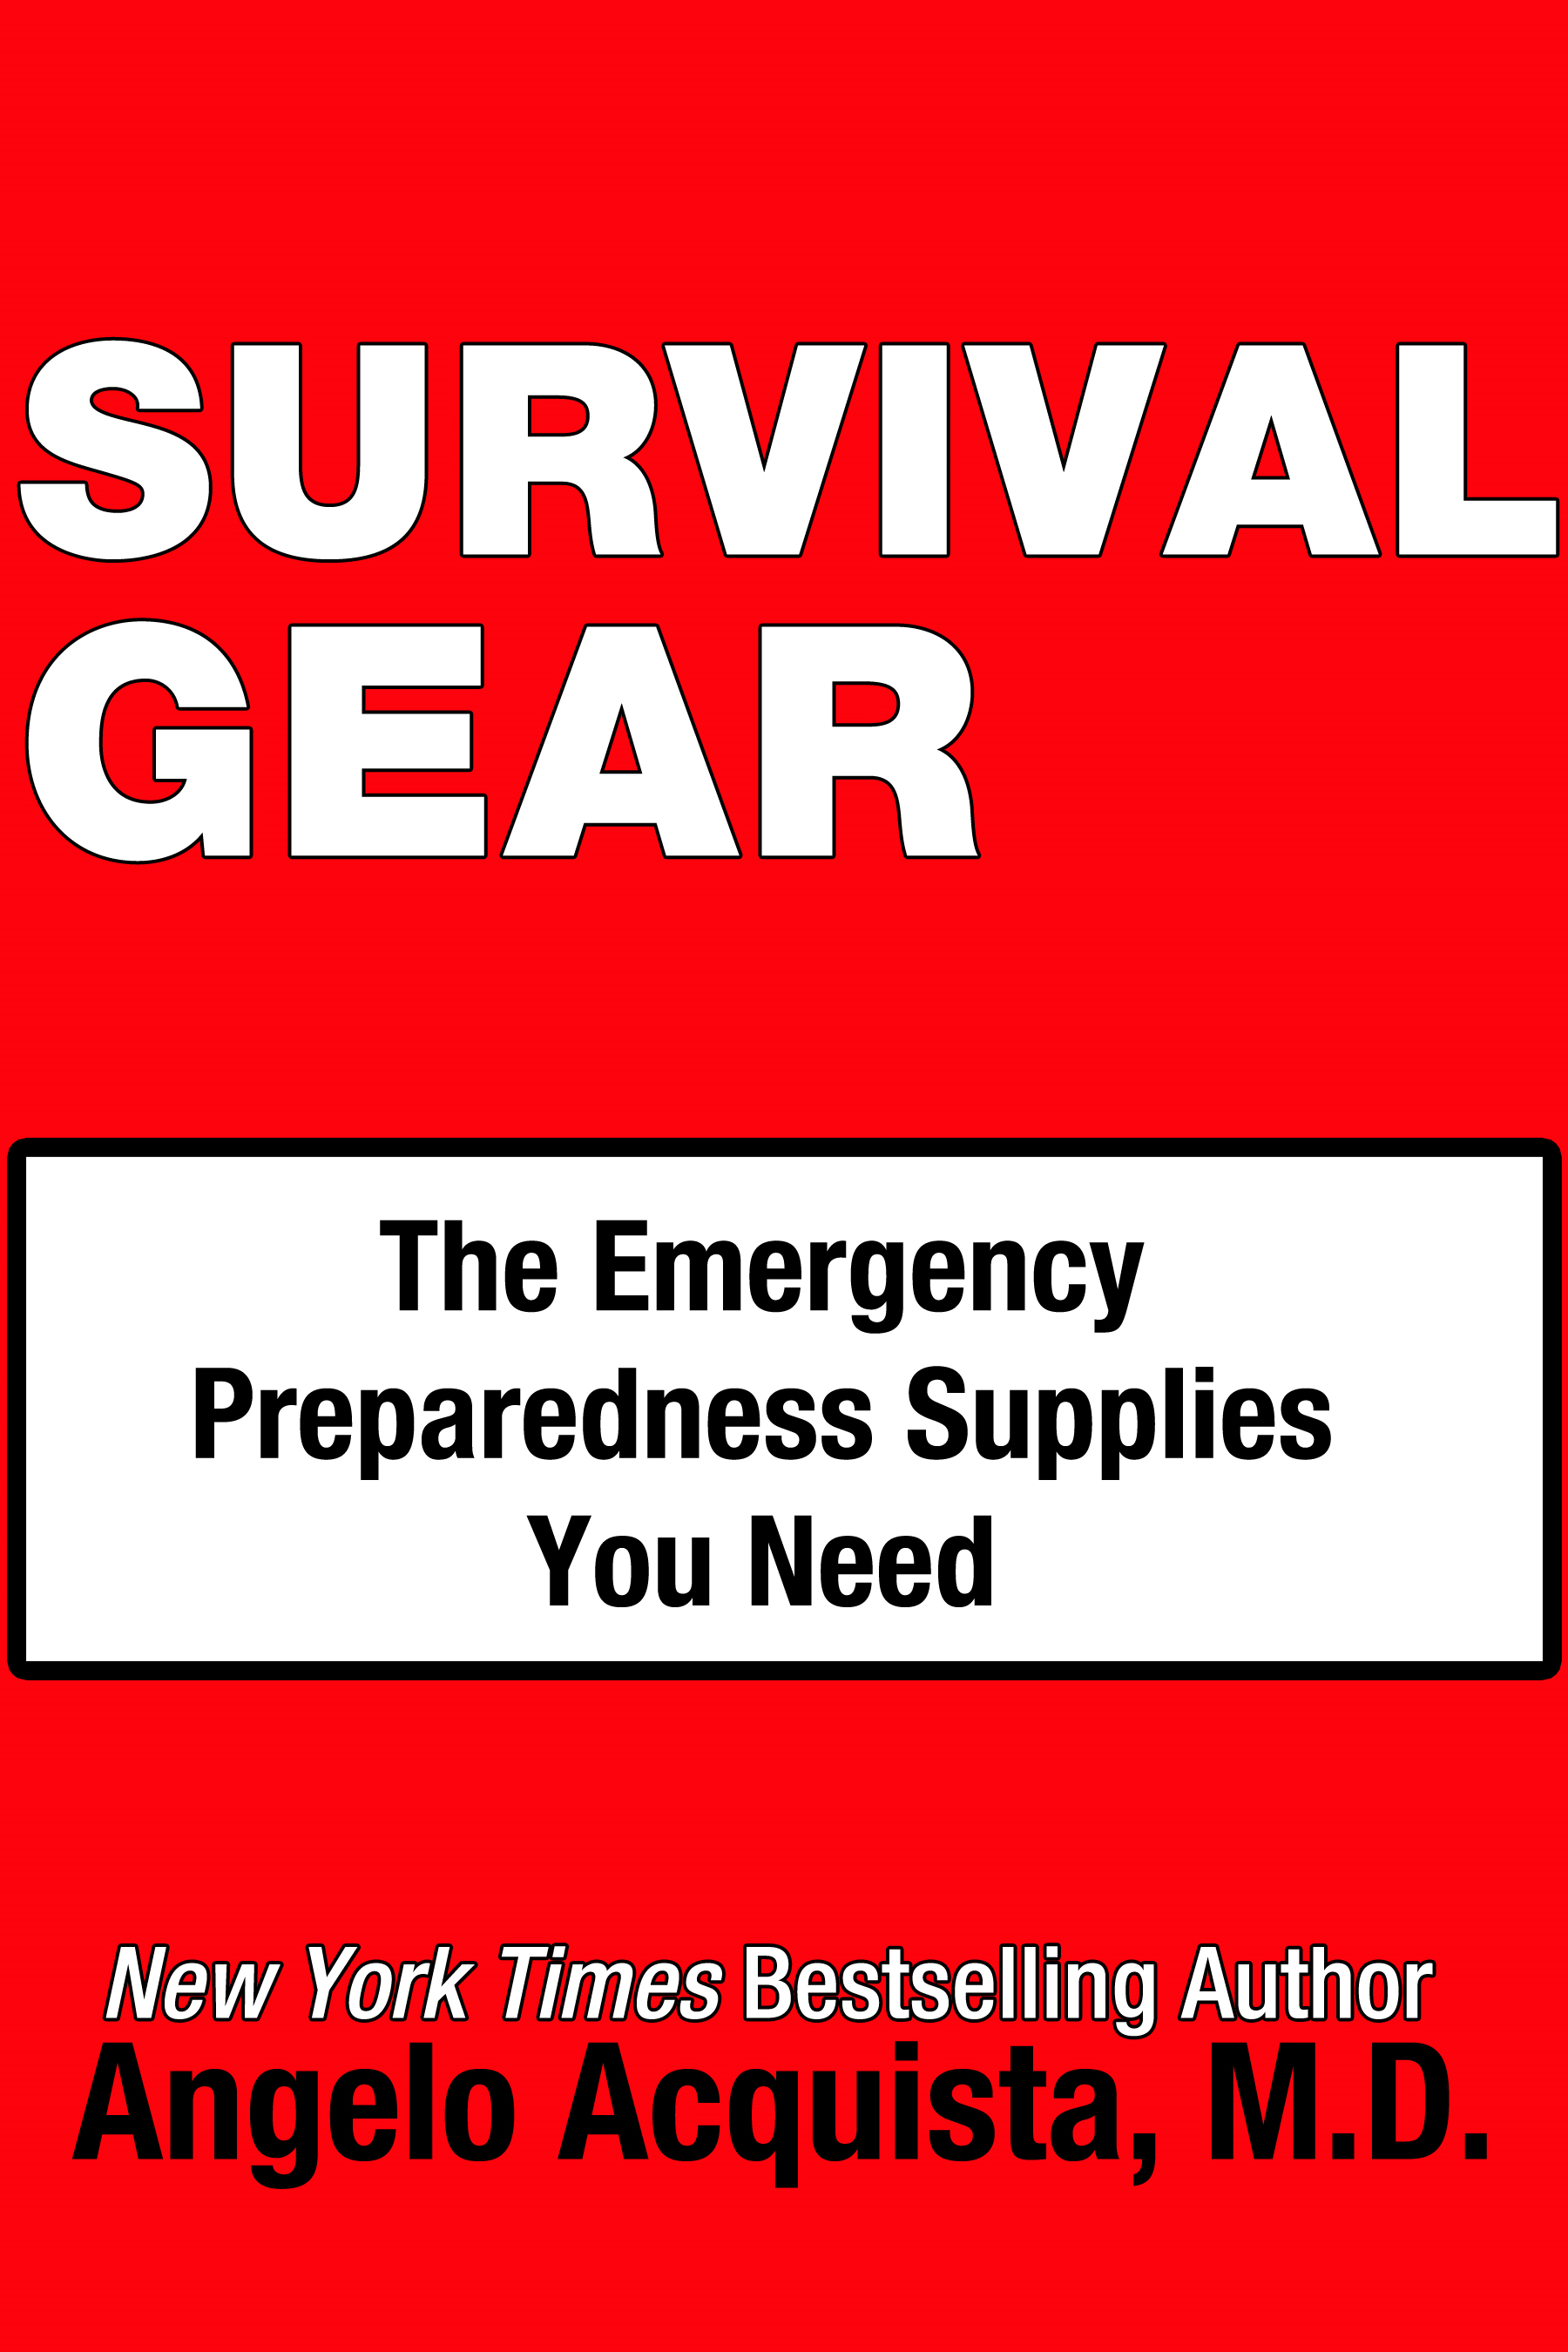 Survival Gear: The Emergency Preparedness Supplies You Need By: Angelo Acquista, M.D.